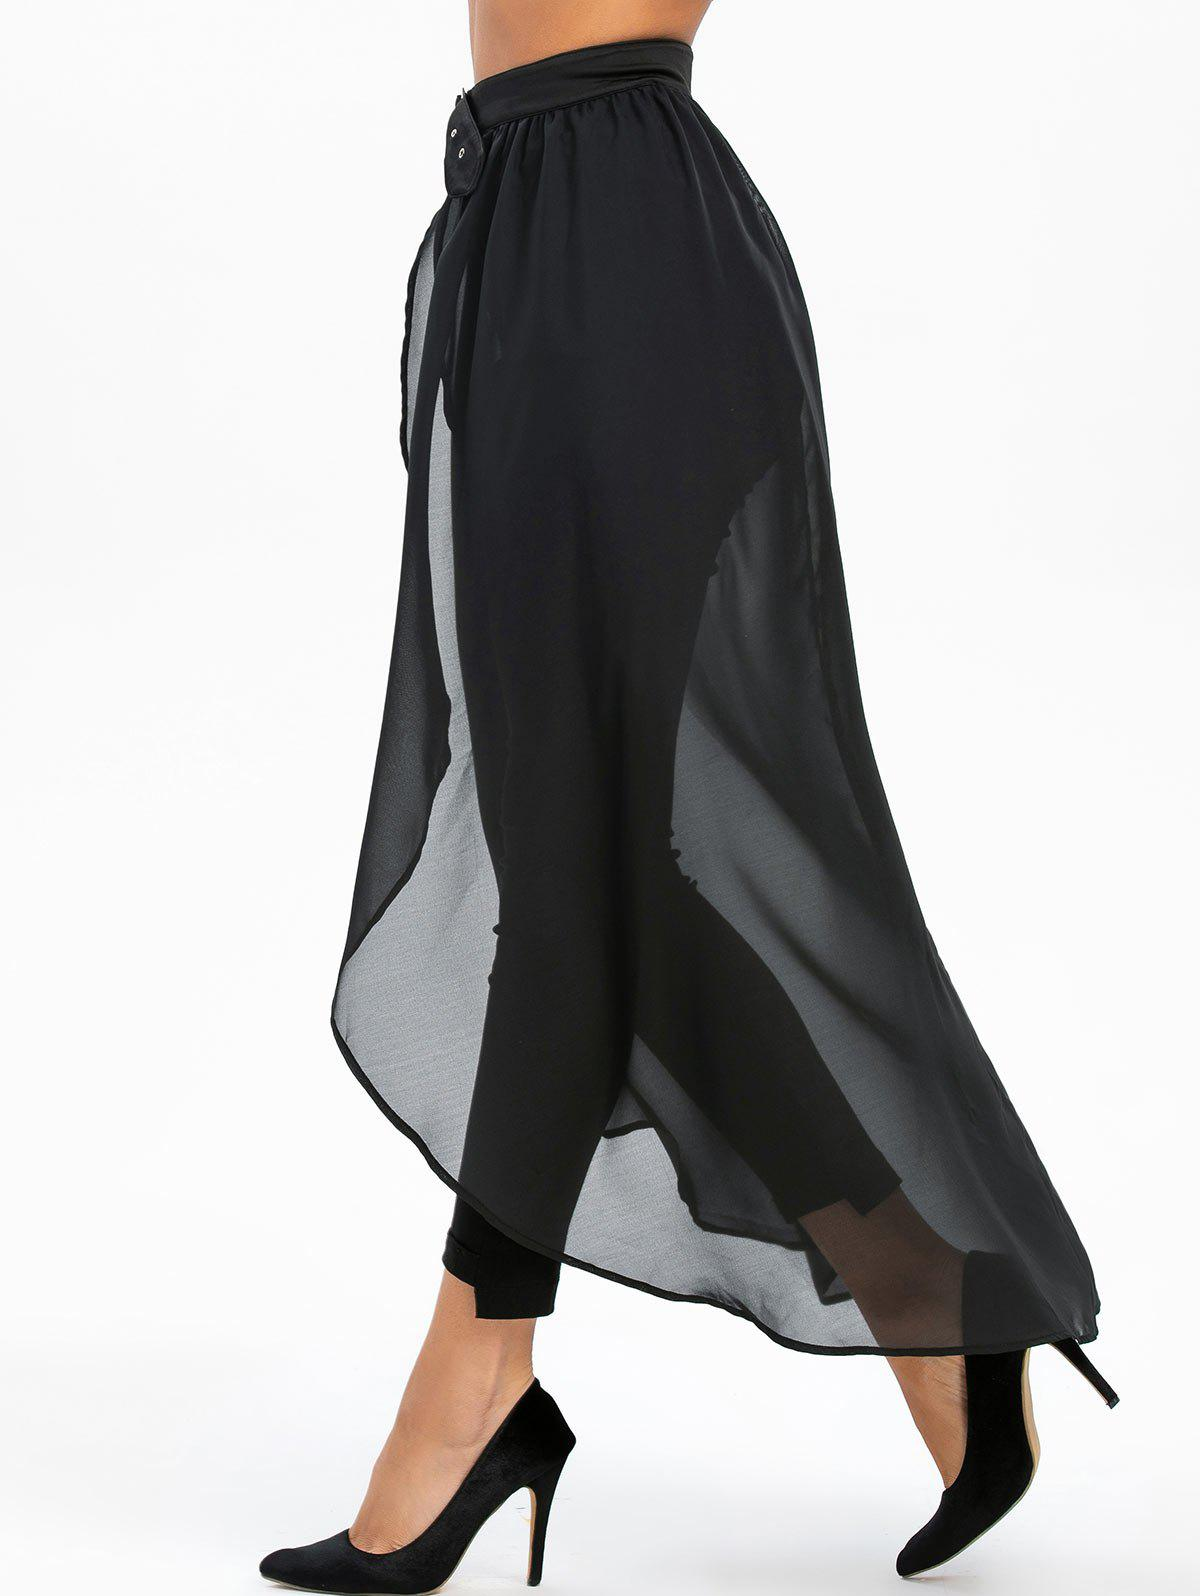 Sale Buckle Strap High Slit High Low See Through Chiffon Skirt